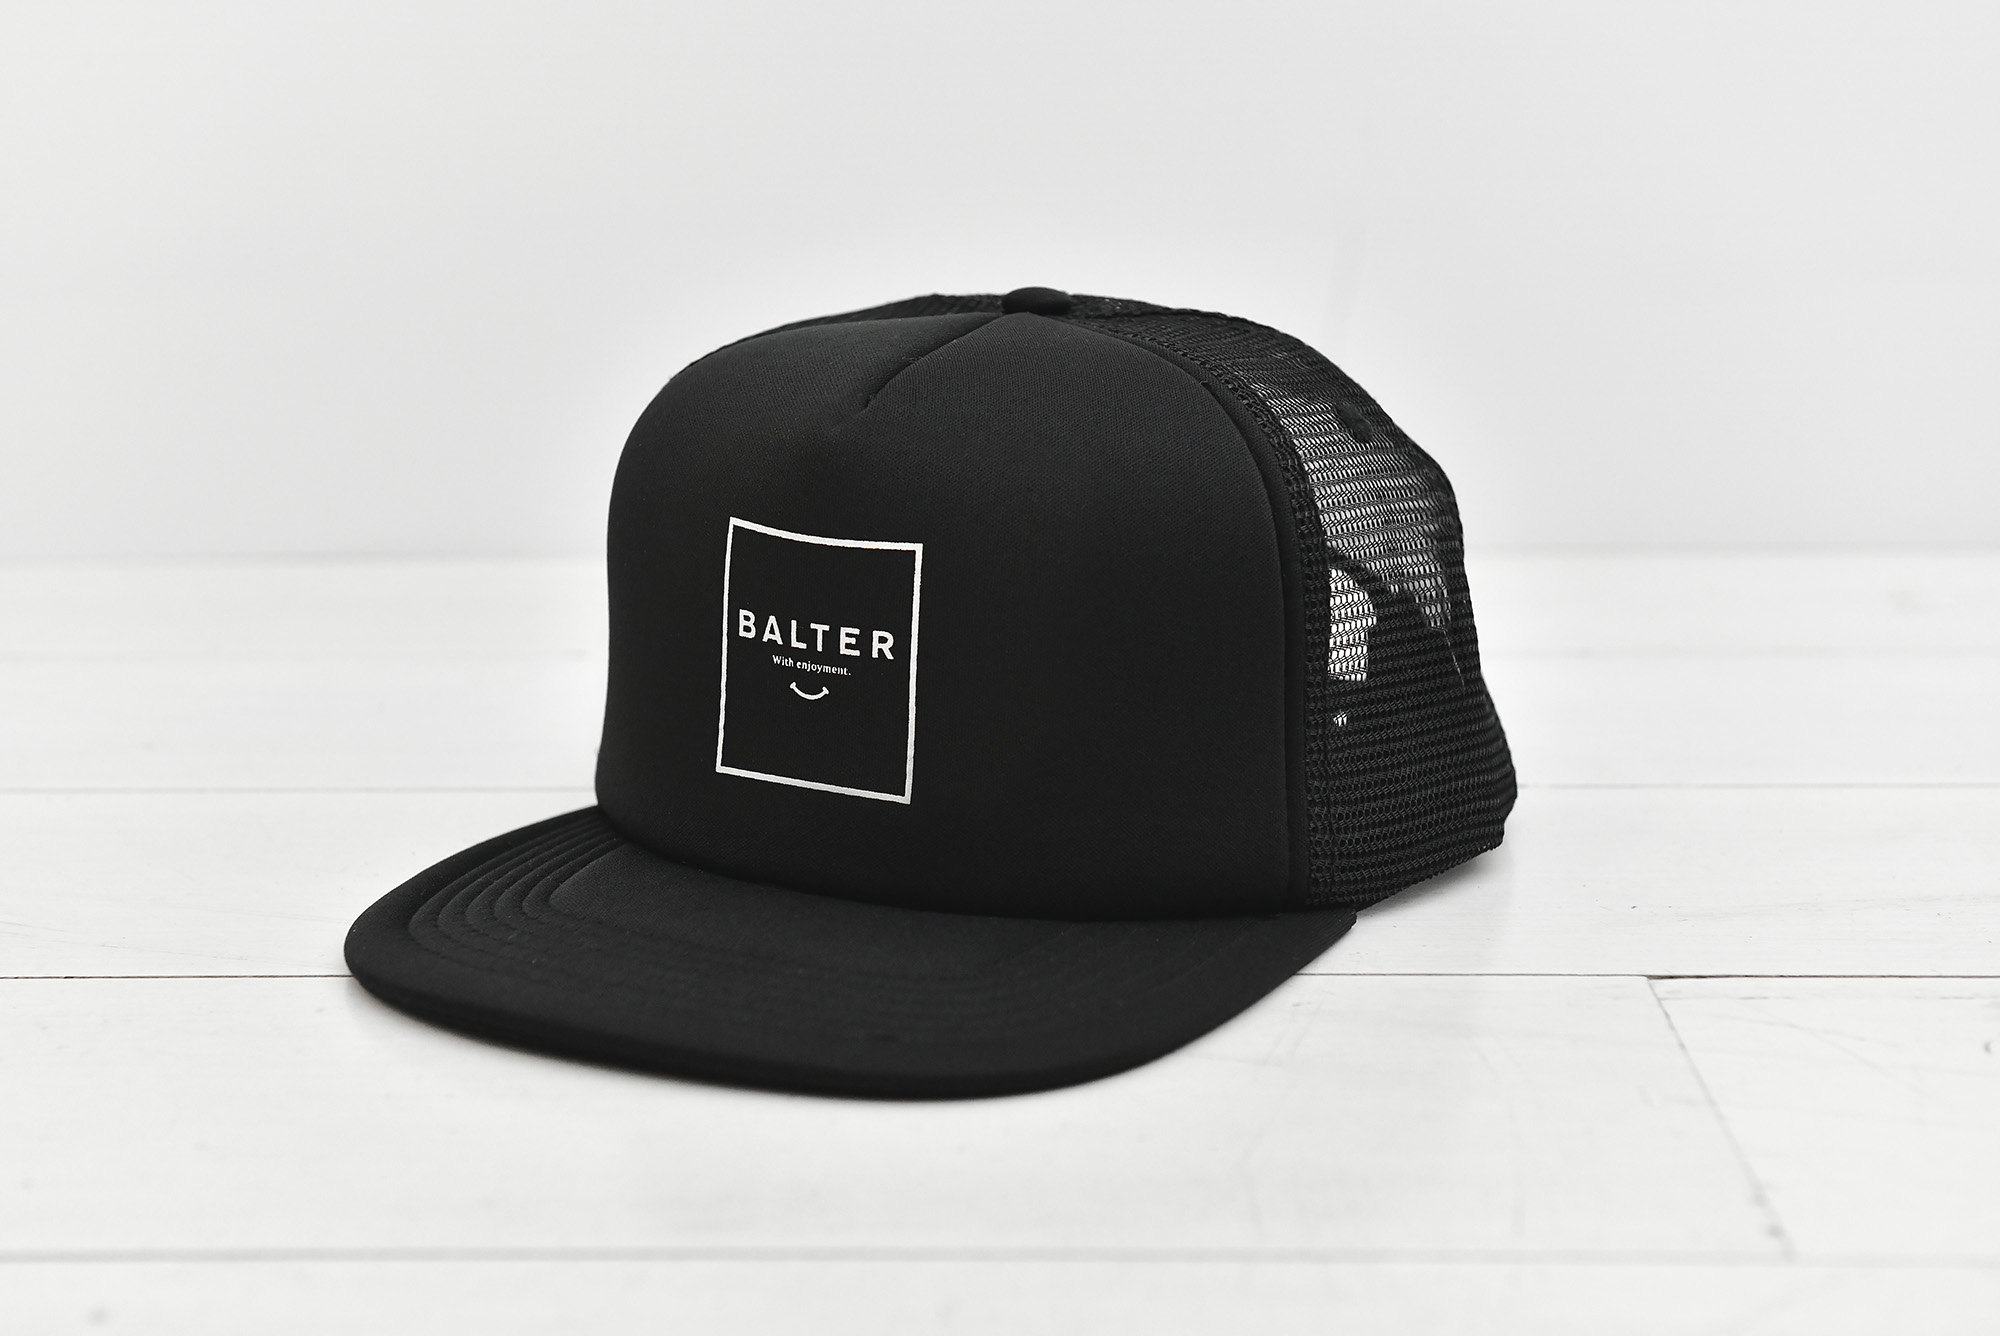 Balter With Enjoyment Logo Cap